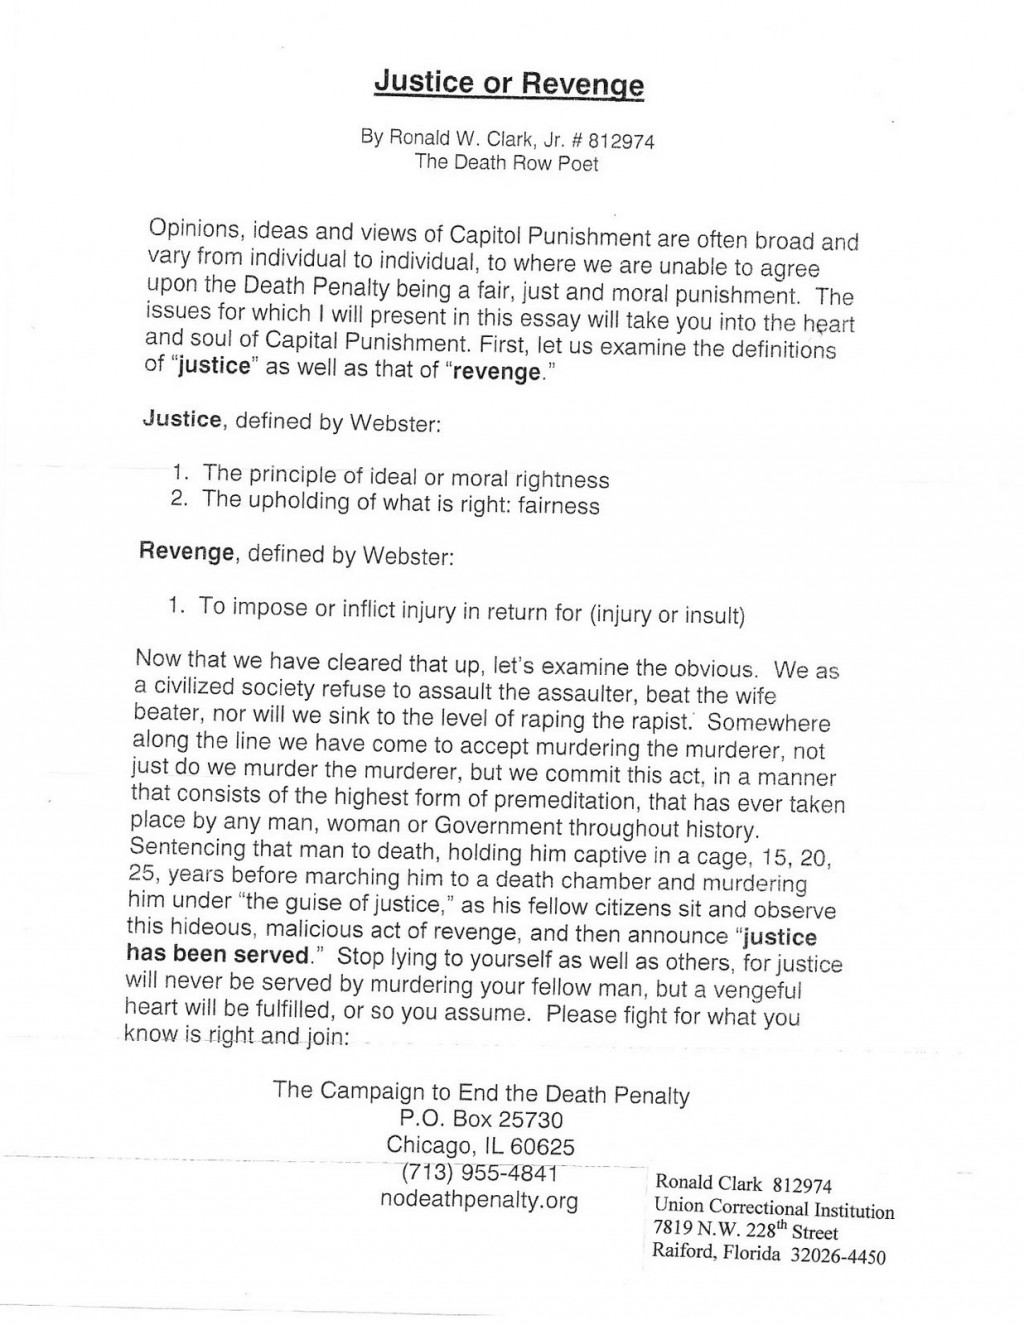 010 Persuasive Essay On Death Penalty Argumentative Capital Punishment L Awful Pros And Cons Conclusion Large